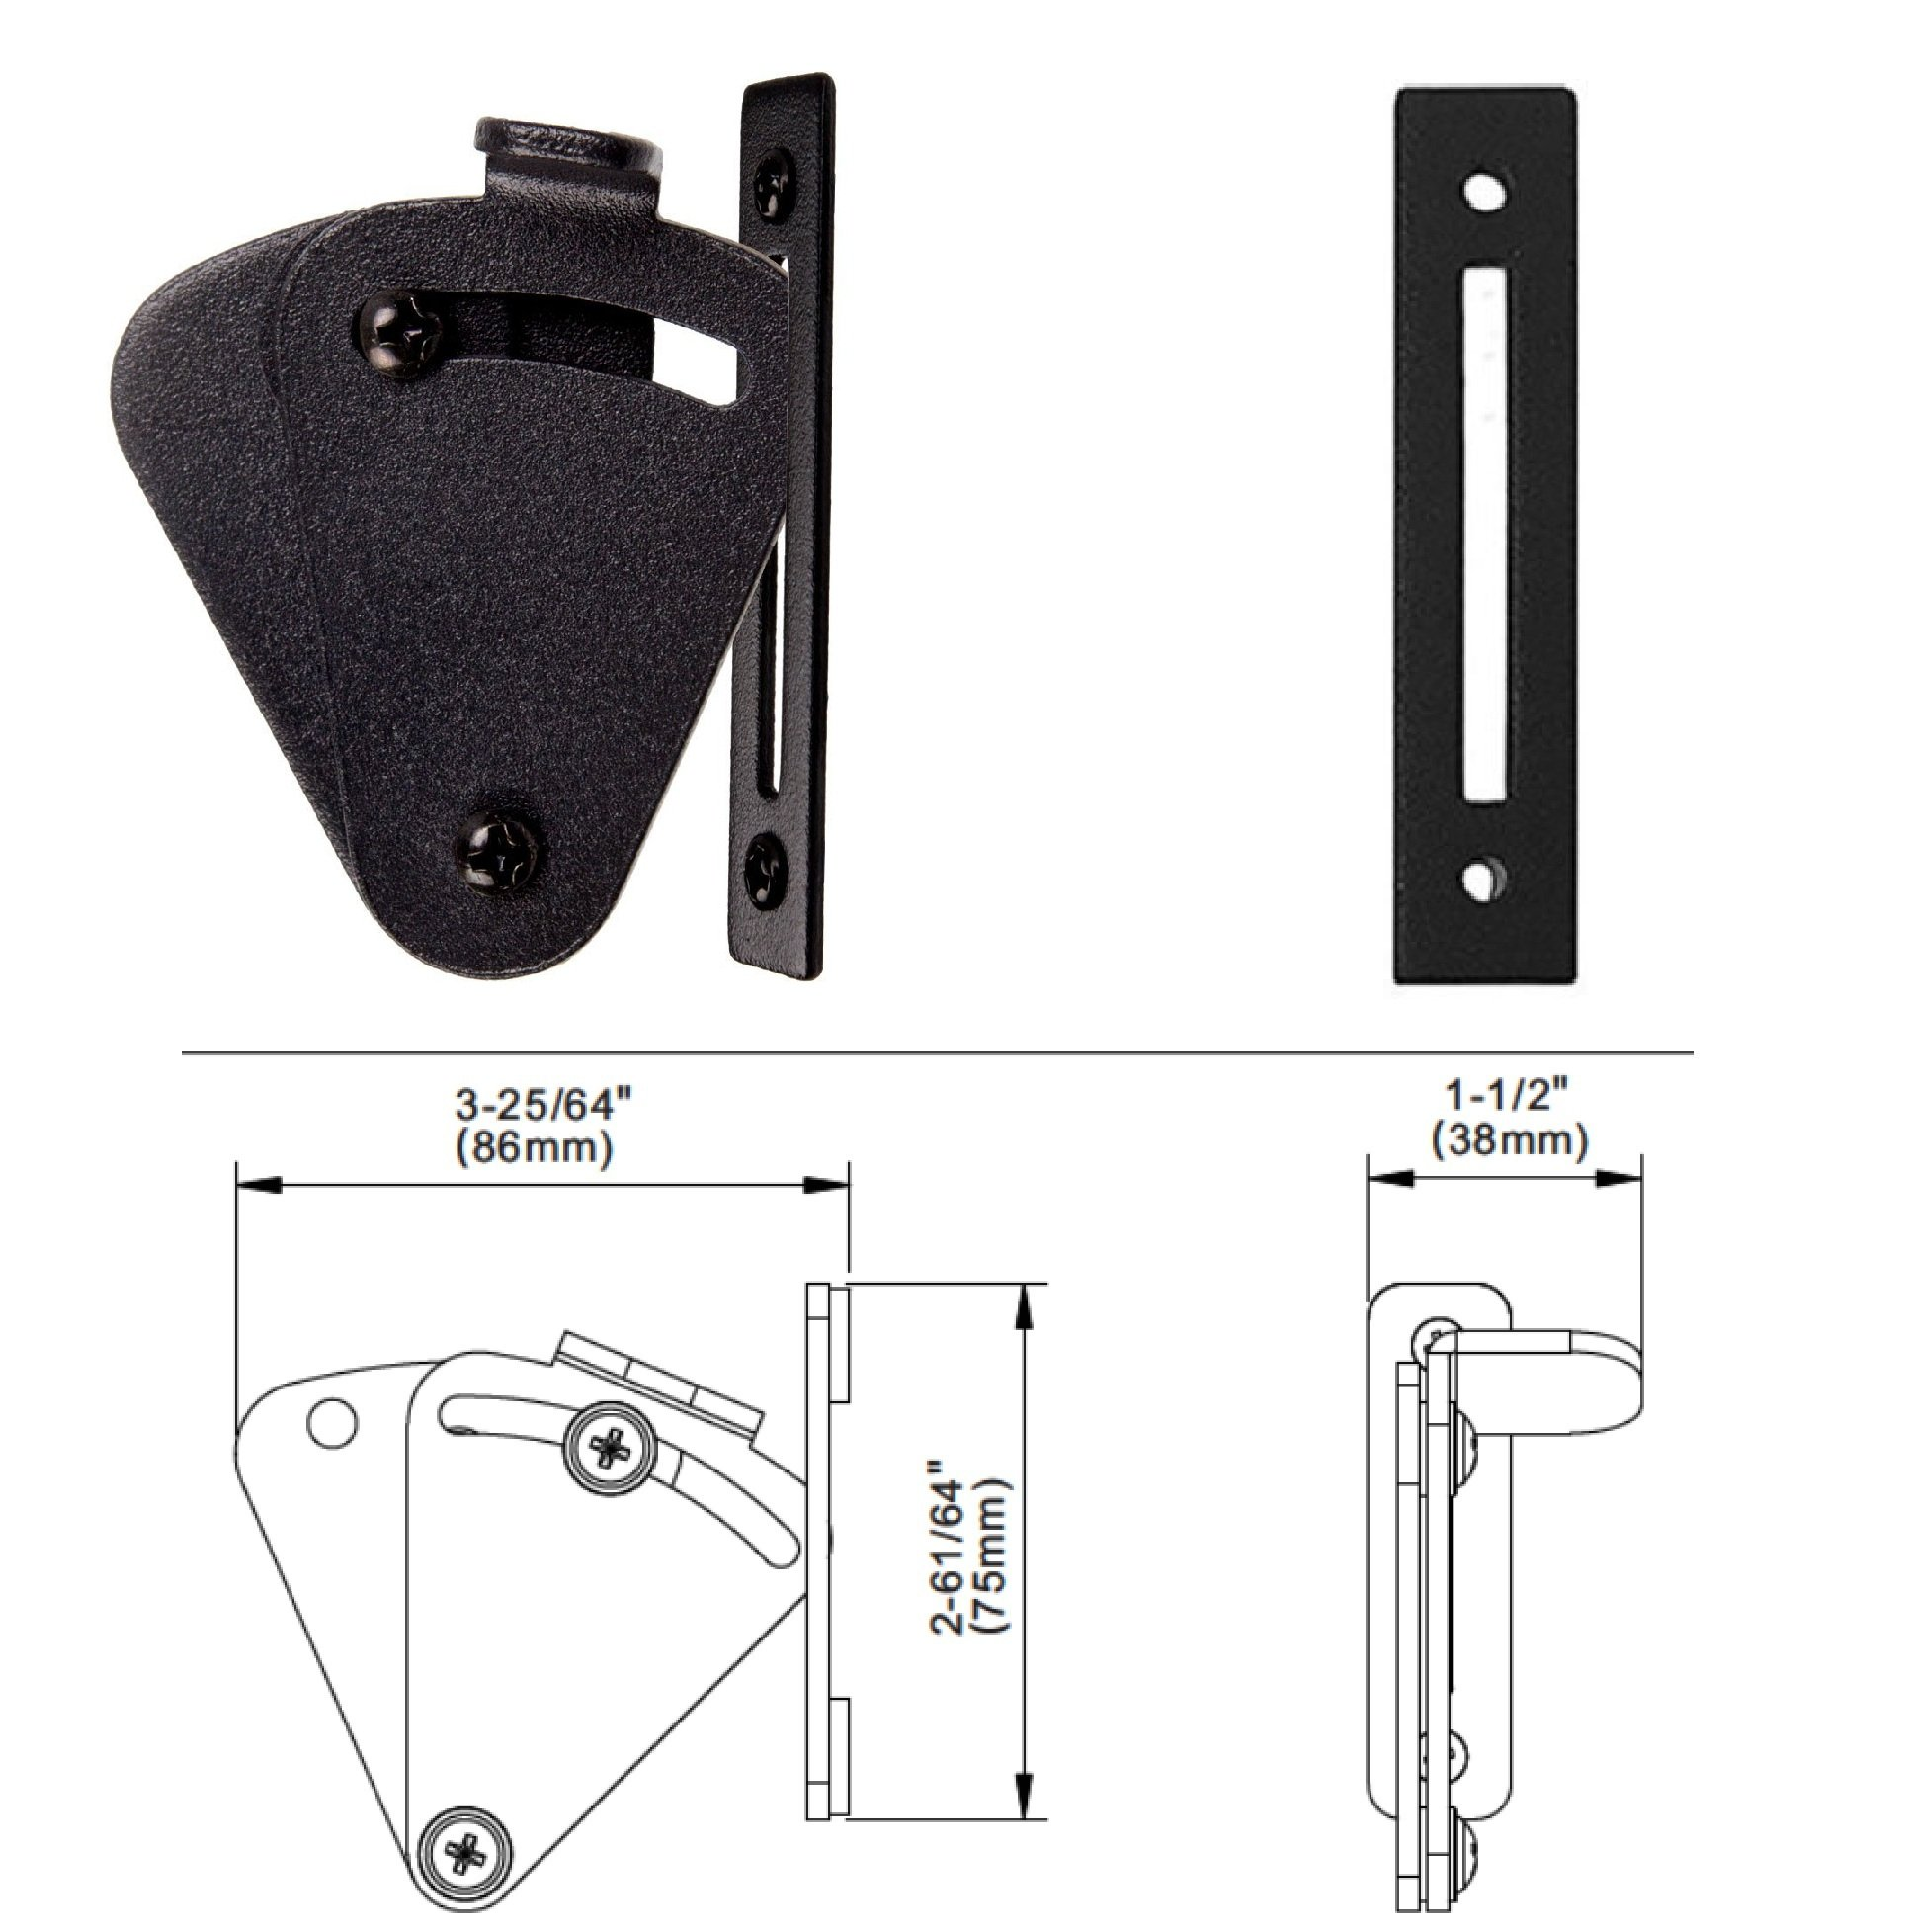 FLORADIS PULL AND FLUSH HANDLE SET 12'' for SLIDING BARN DOOR HARDWARE / FIT DOORS UP TO 2 1/3''/ FLUSH BACK PLATE/3 Pairs of Different Lengths Screws/ Door Lock Latch/Frosted Black Satin Powder Coating